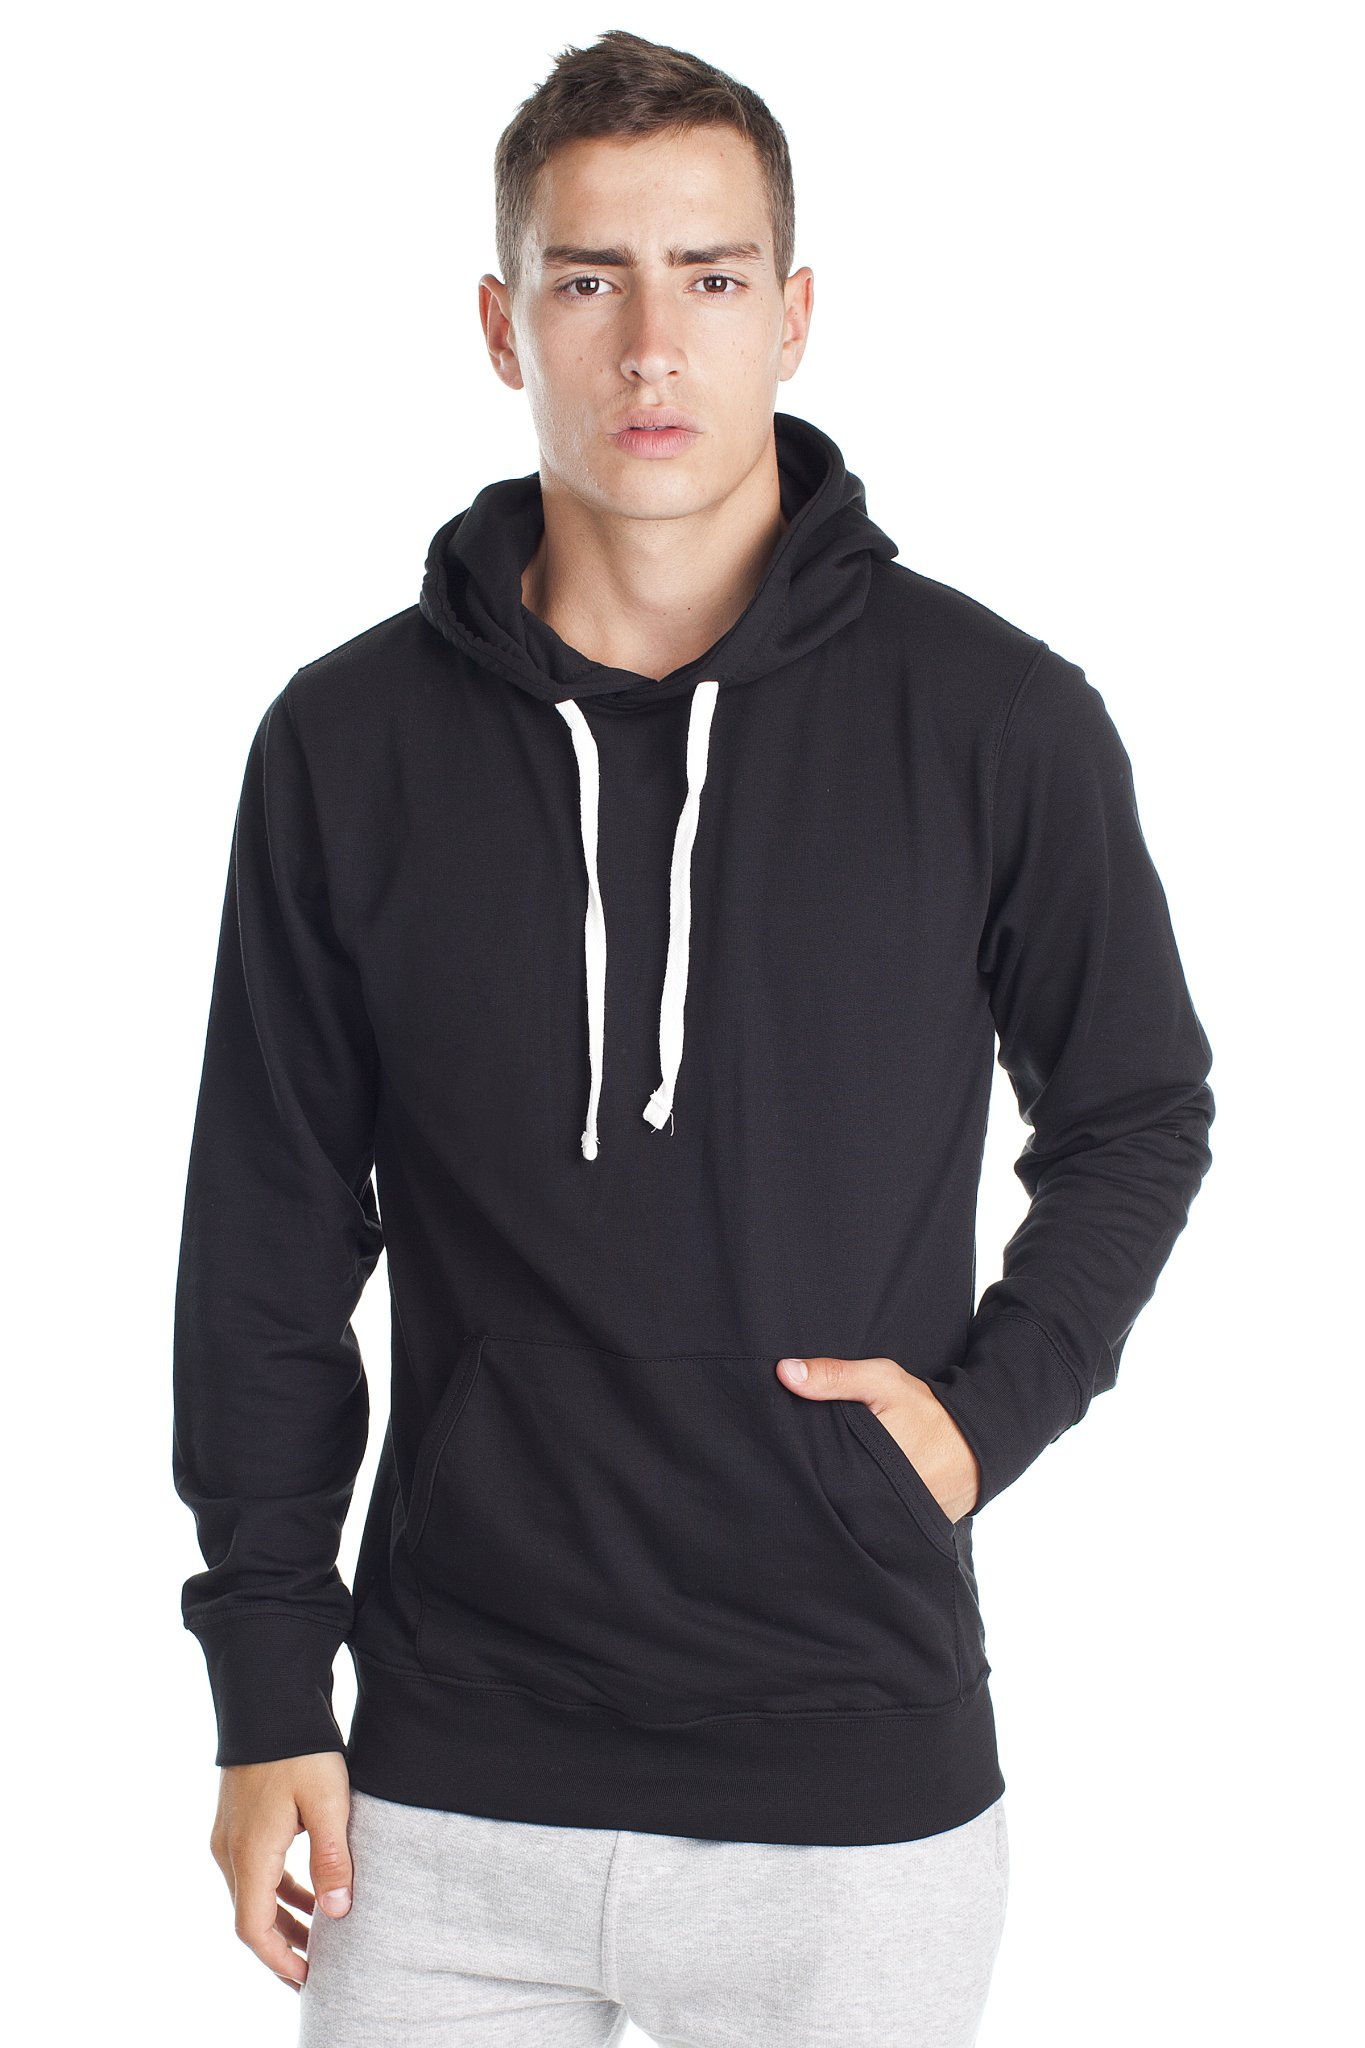 Fleece Factory Mens Pullover Sweatshirt Hoodie with Fashion Fit in French Terry, Black, Small